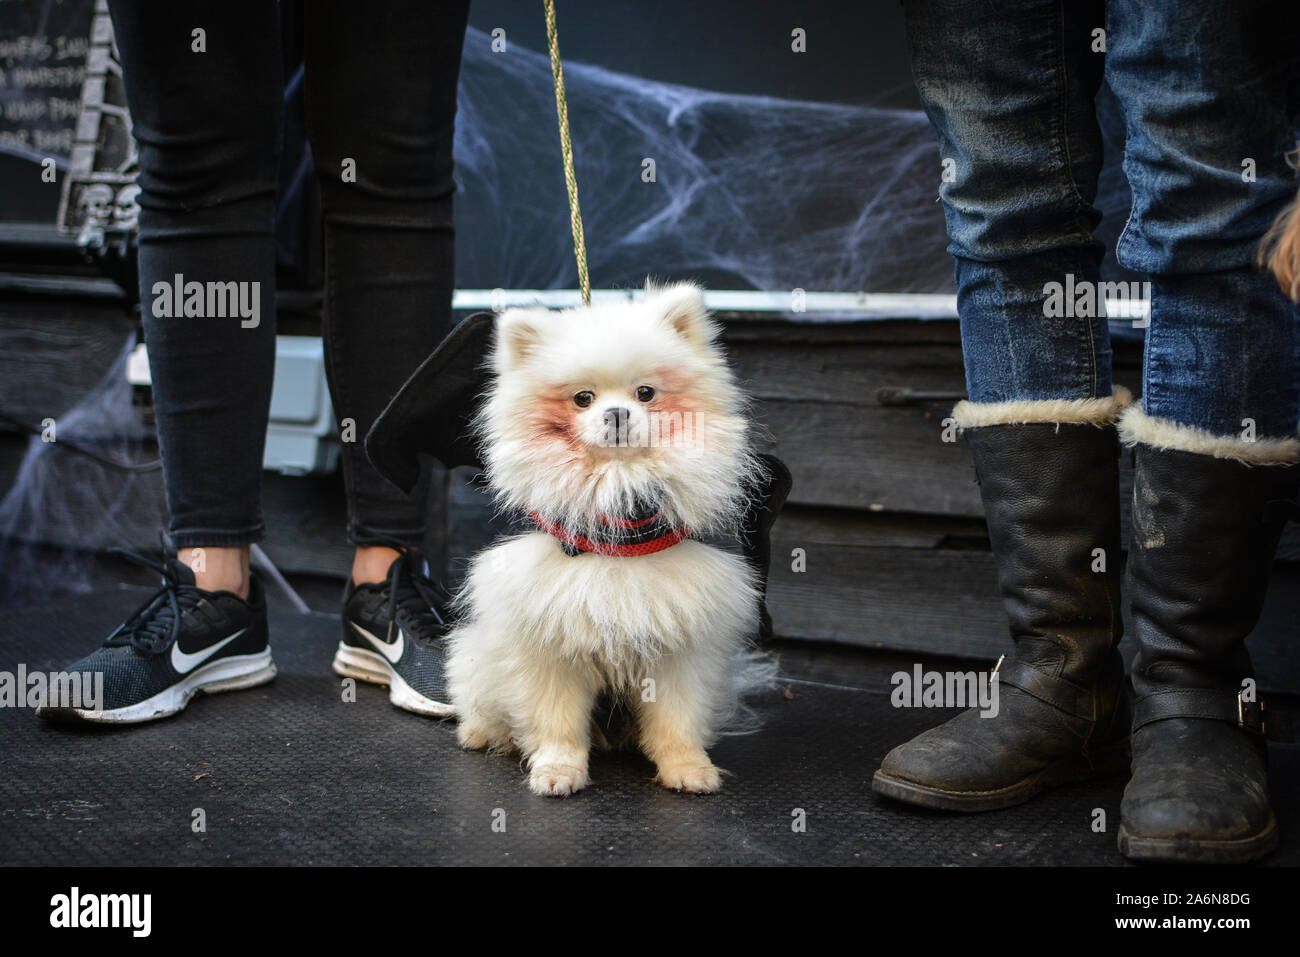 Halloween Chiesa.Halloween Dog Extravaganza High Resolution Stock Photography And Images Alamy